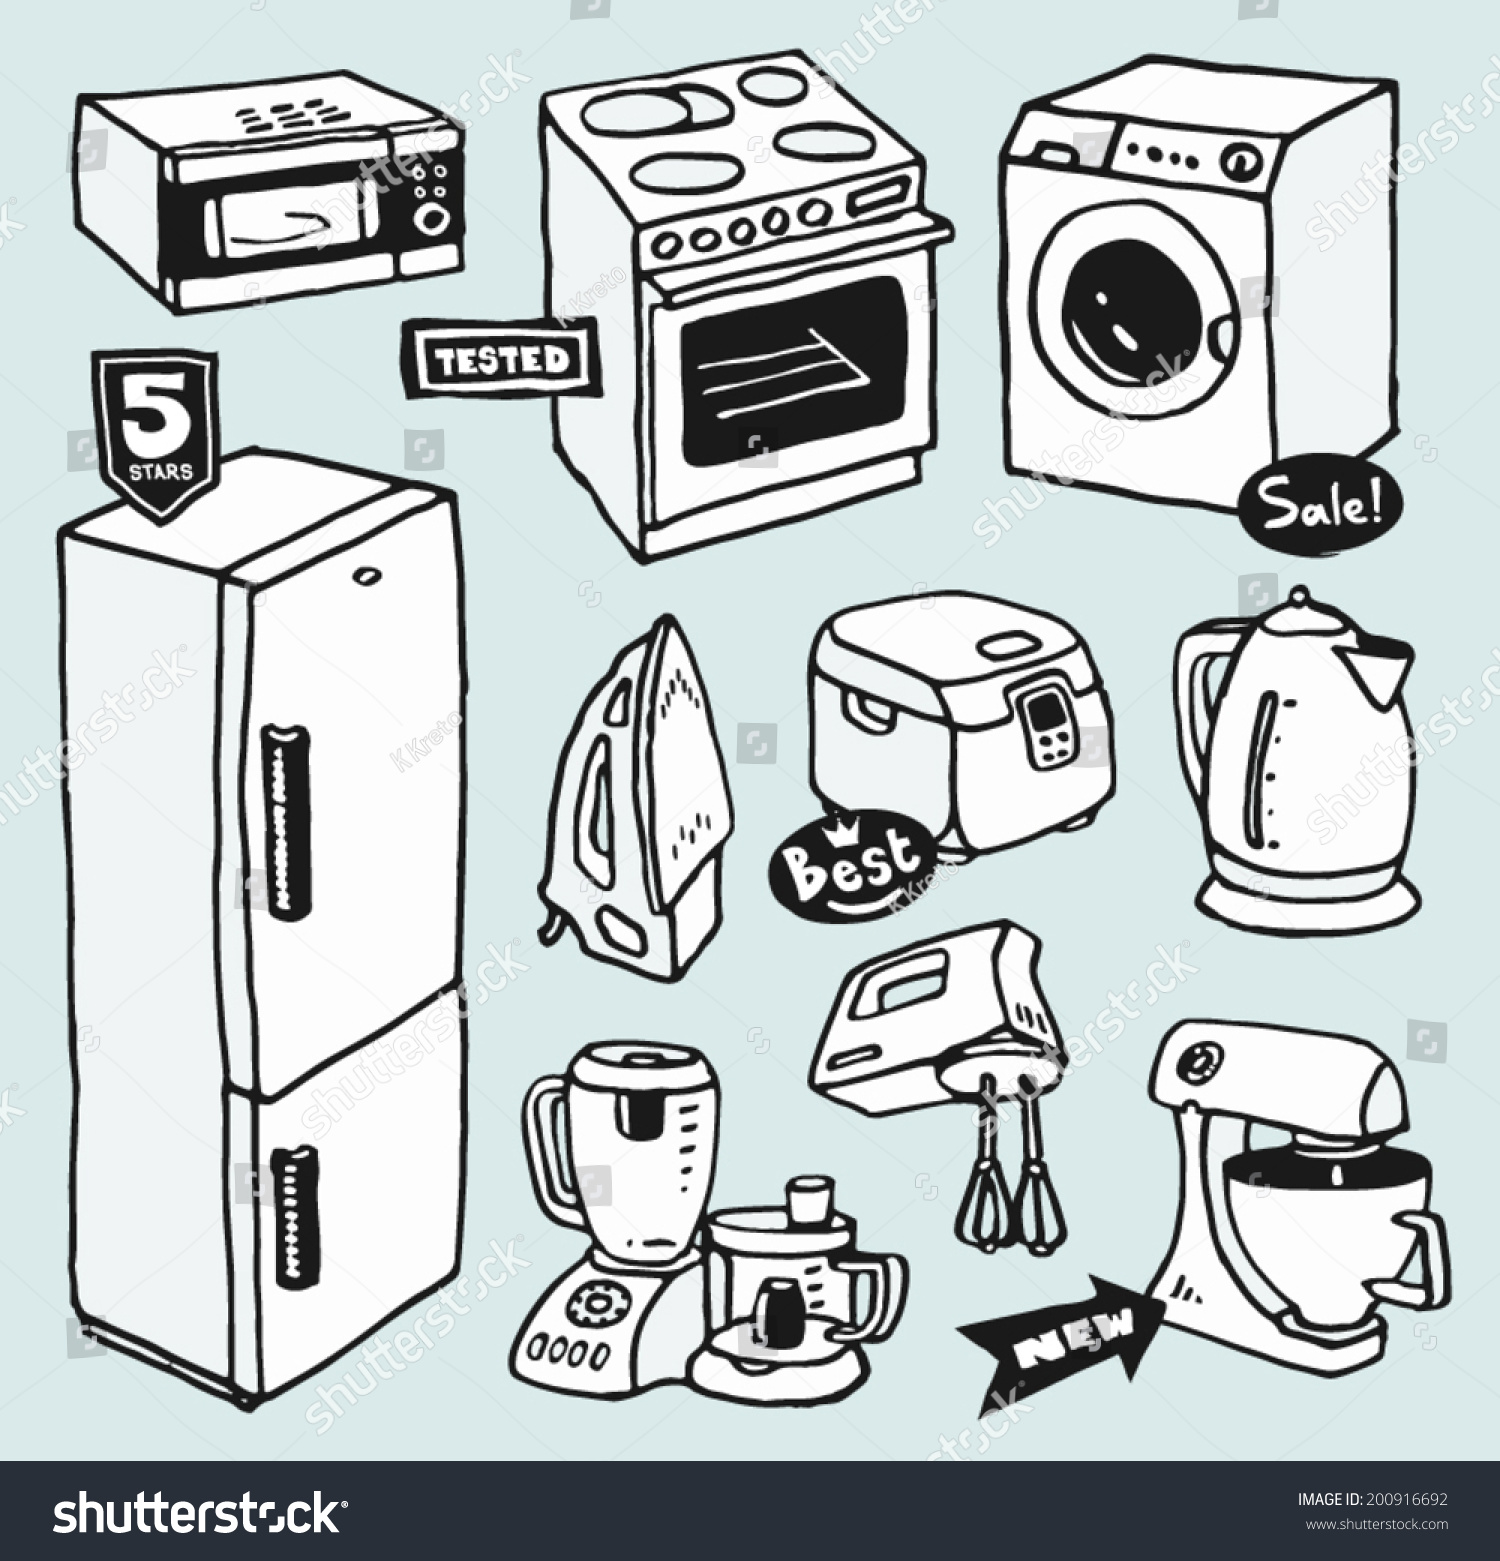 Cartoon Washer And Dryer ~ Cartoon appliance logo pictures to pin on pinterest